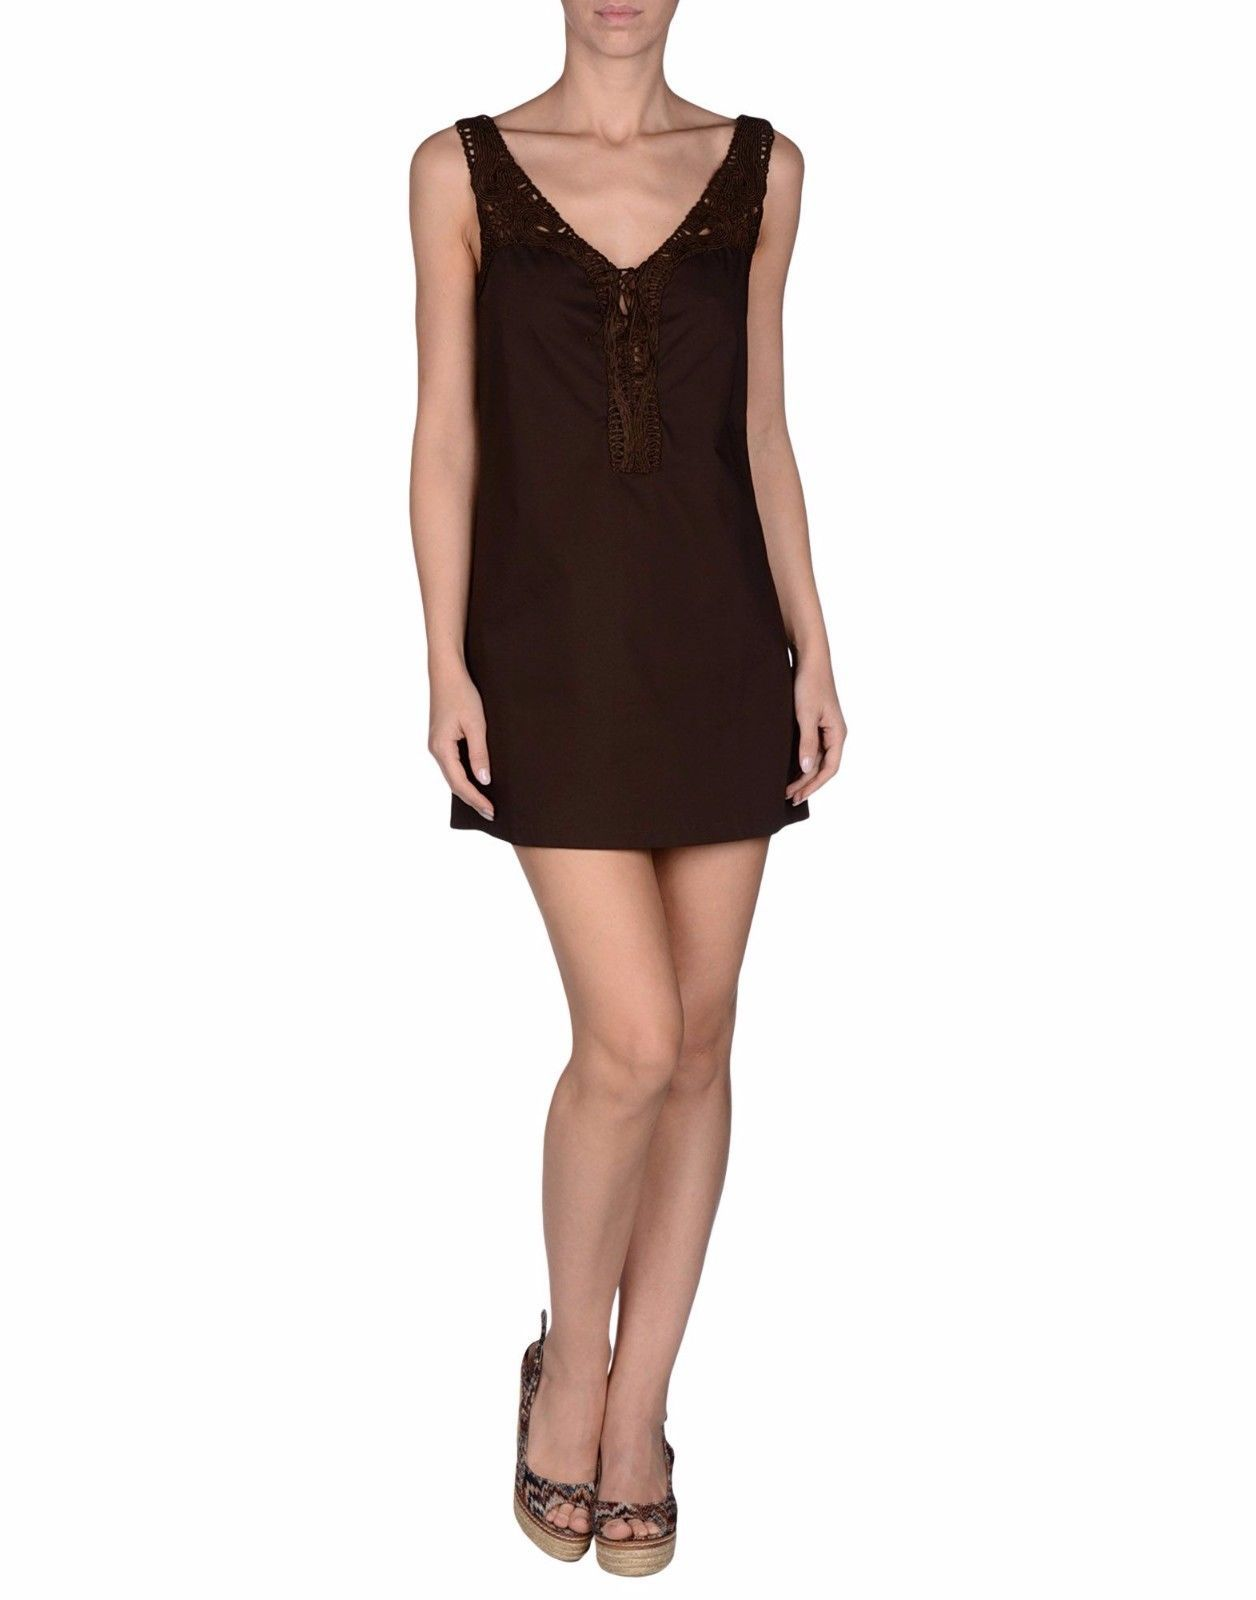 Ermanno Scervino Beachwear Brown Cotton Stretch Tunic Dress